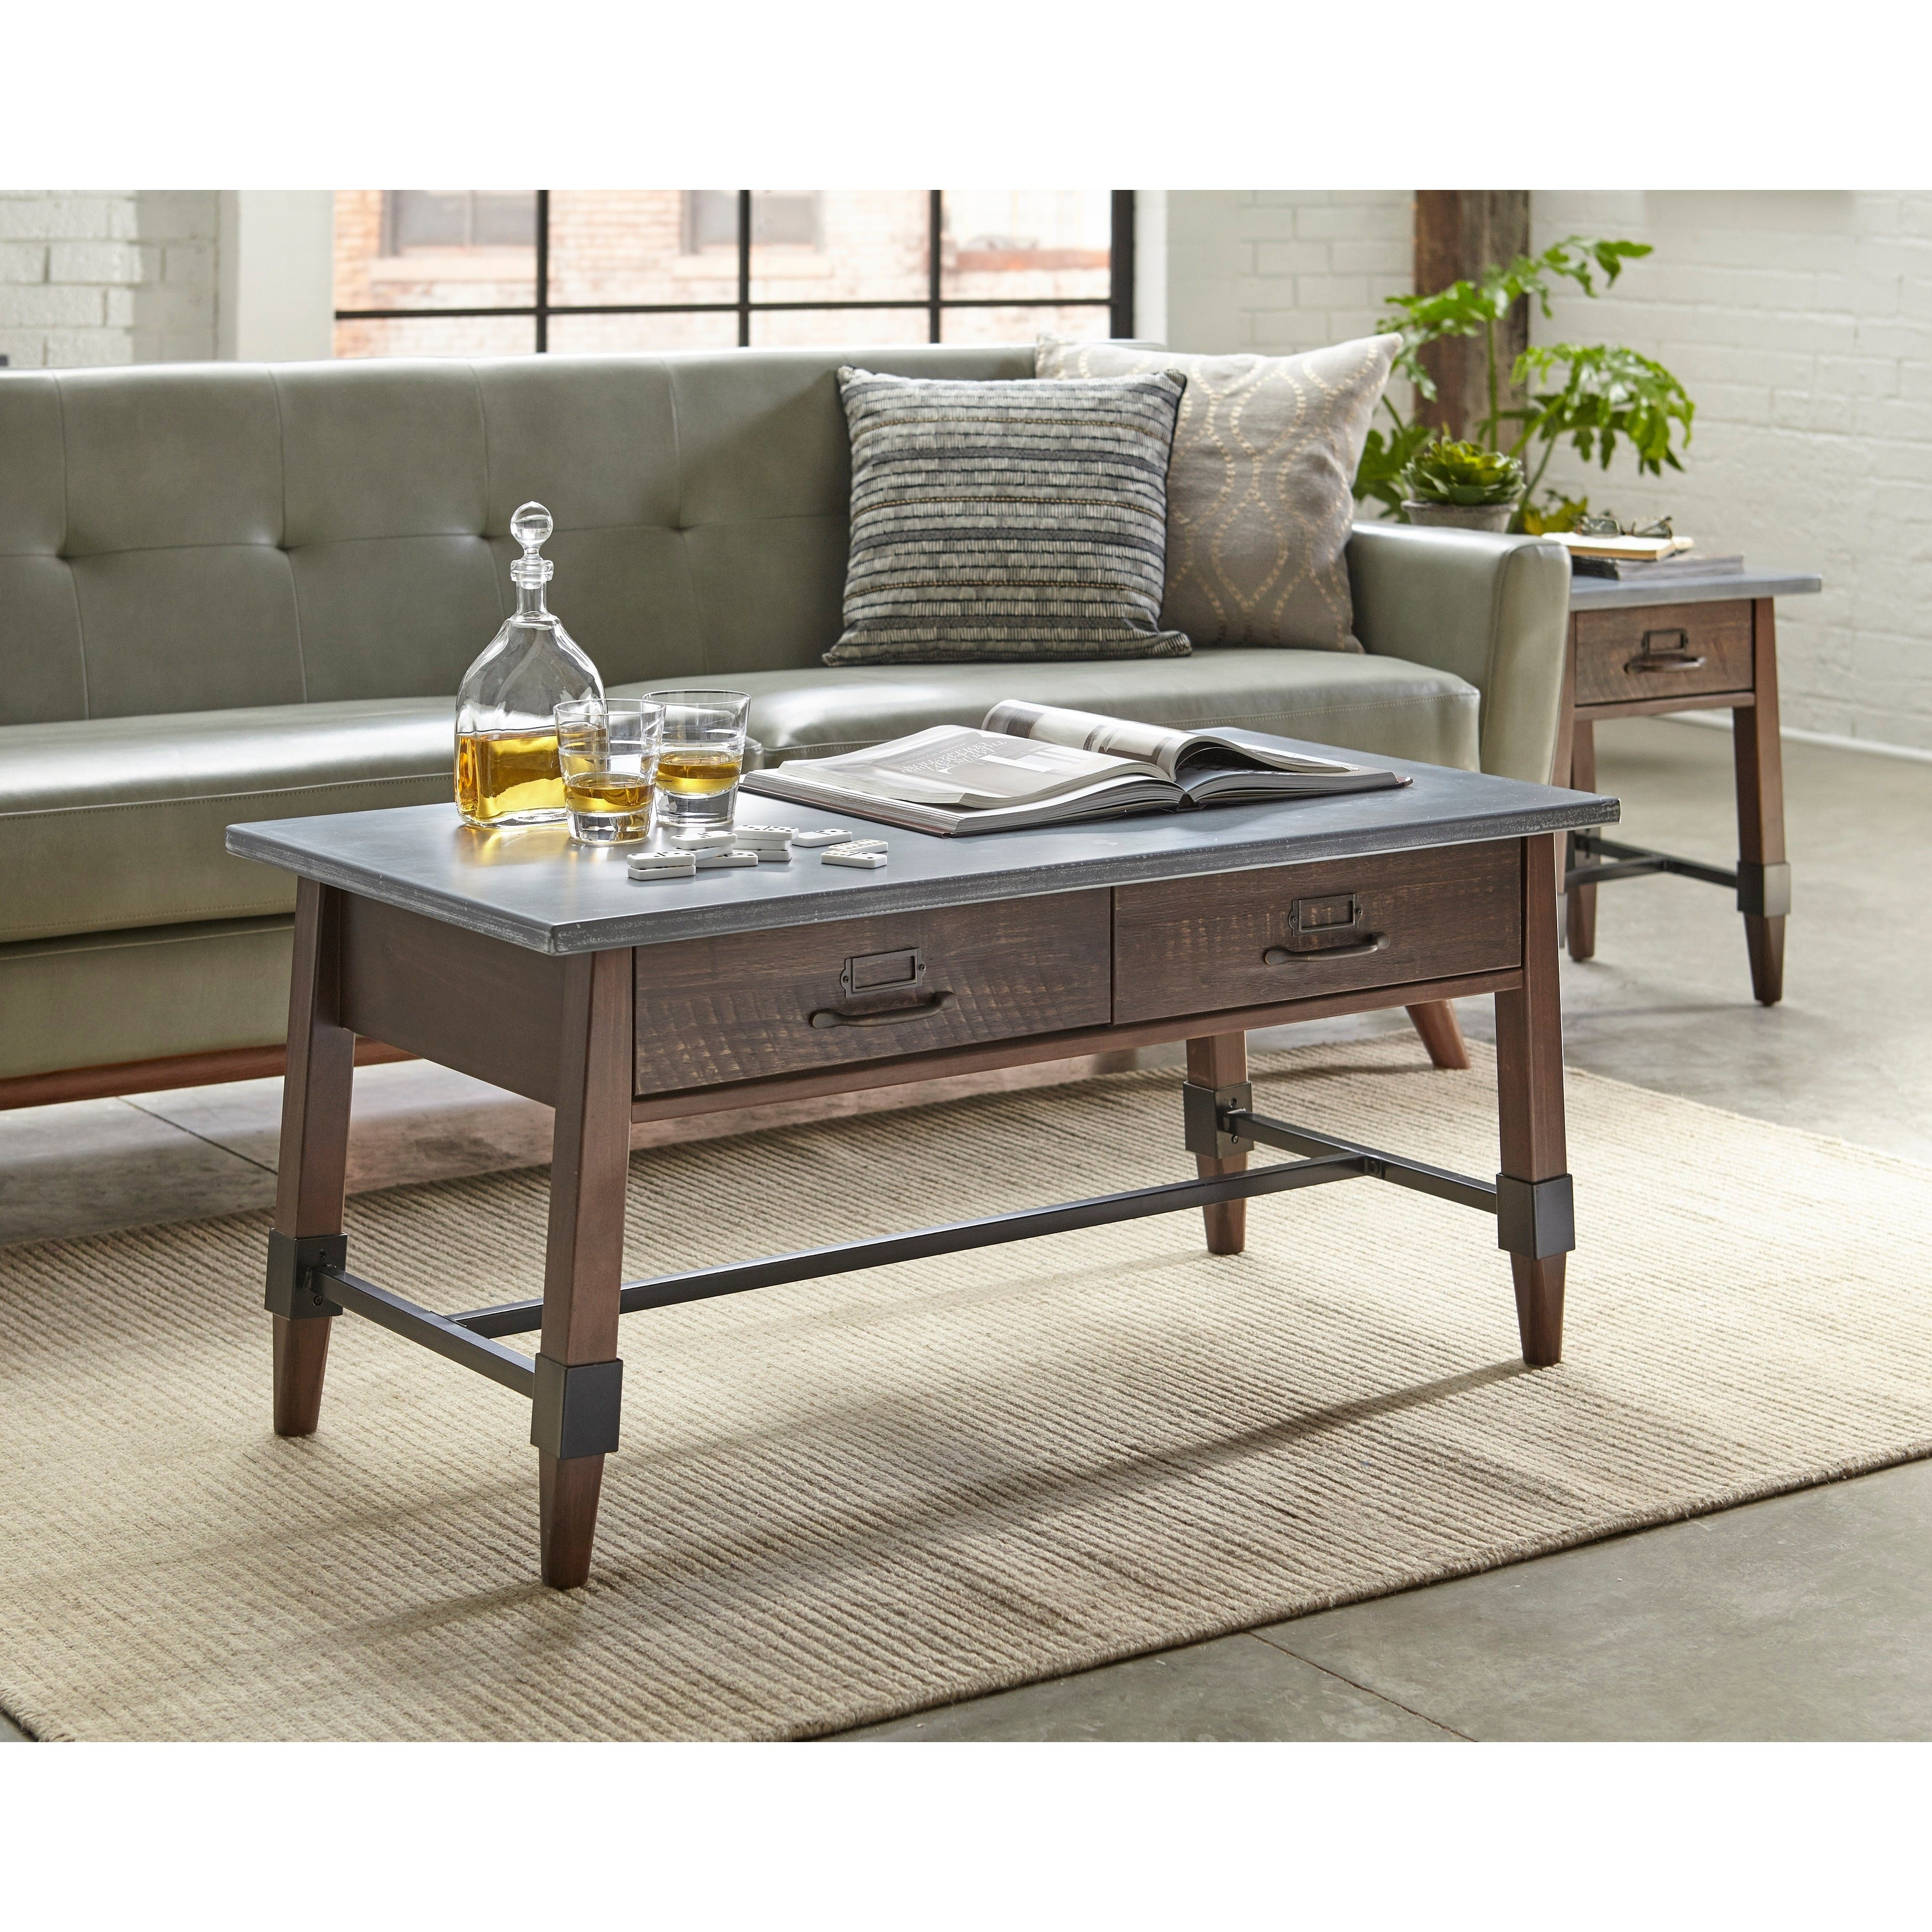 Simple Living Clint Coffee Table Free Shipping Today 19484774